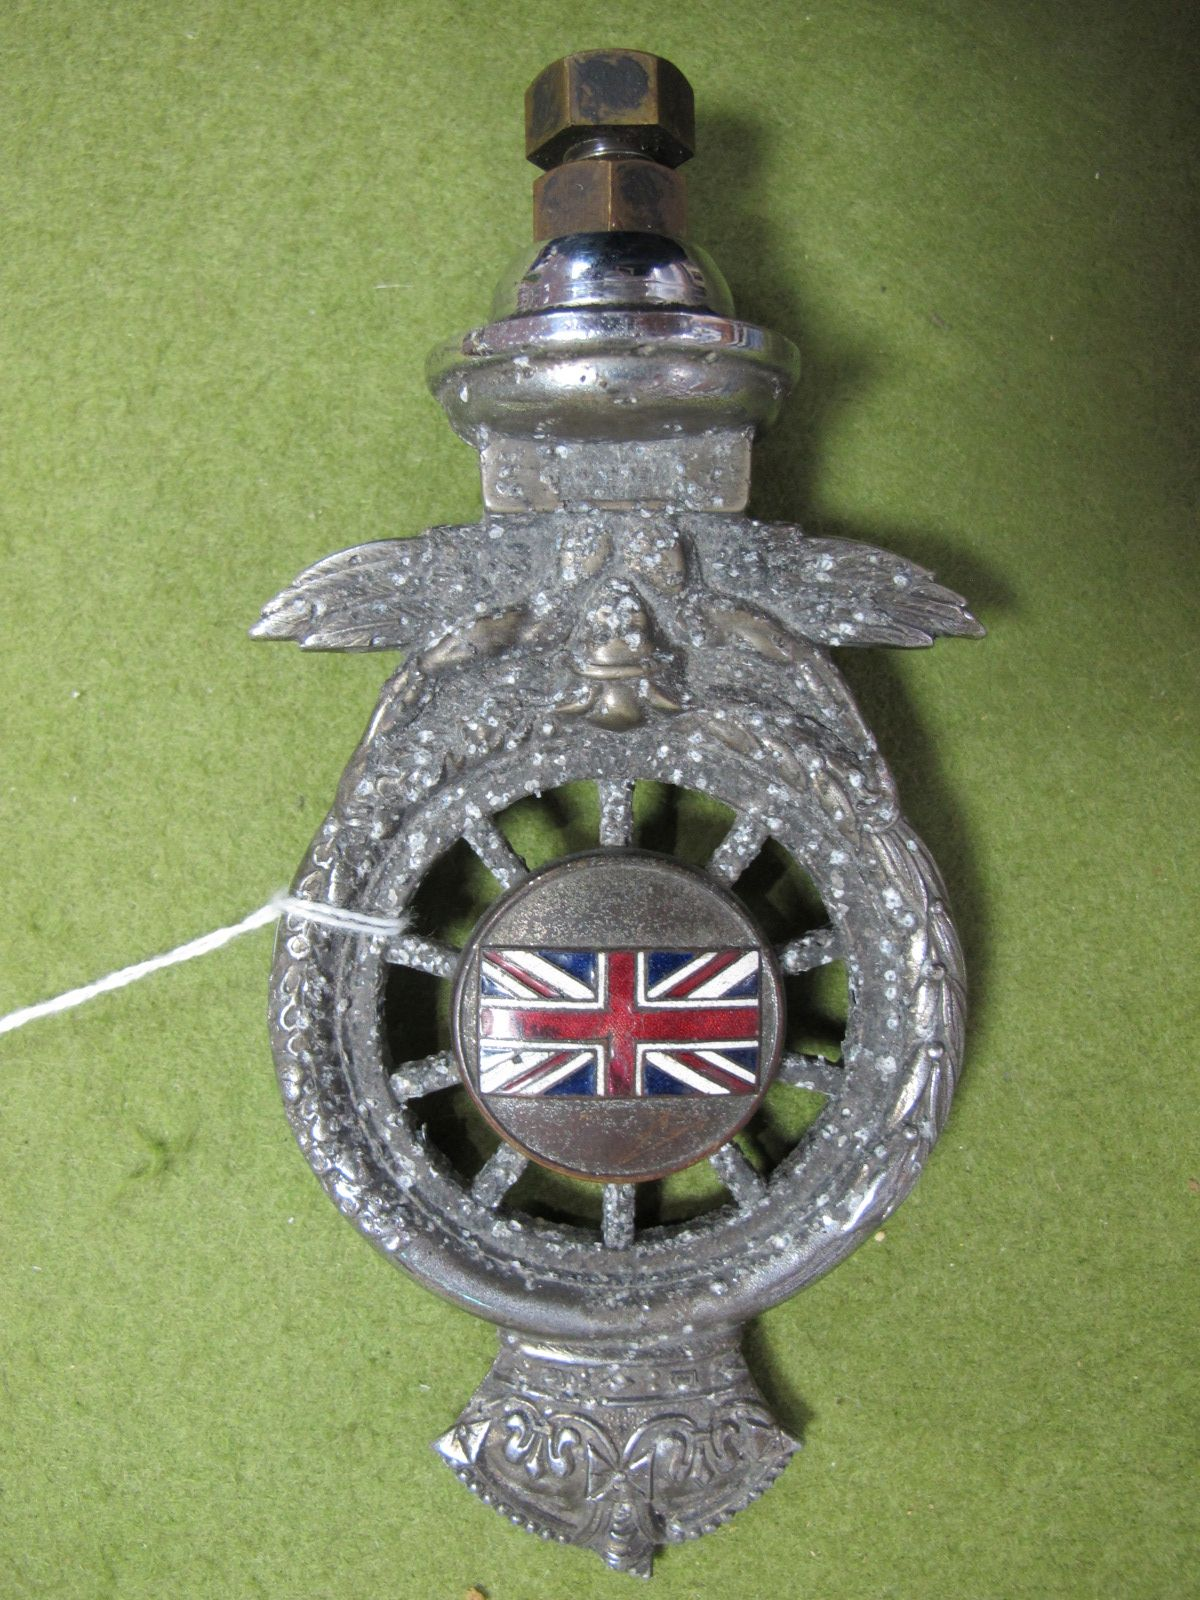 Lot 27 - A 1930 Full RAC Members Badge, chrome with enamel Union Jack. Slight damage to crown.